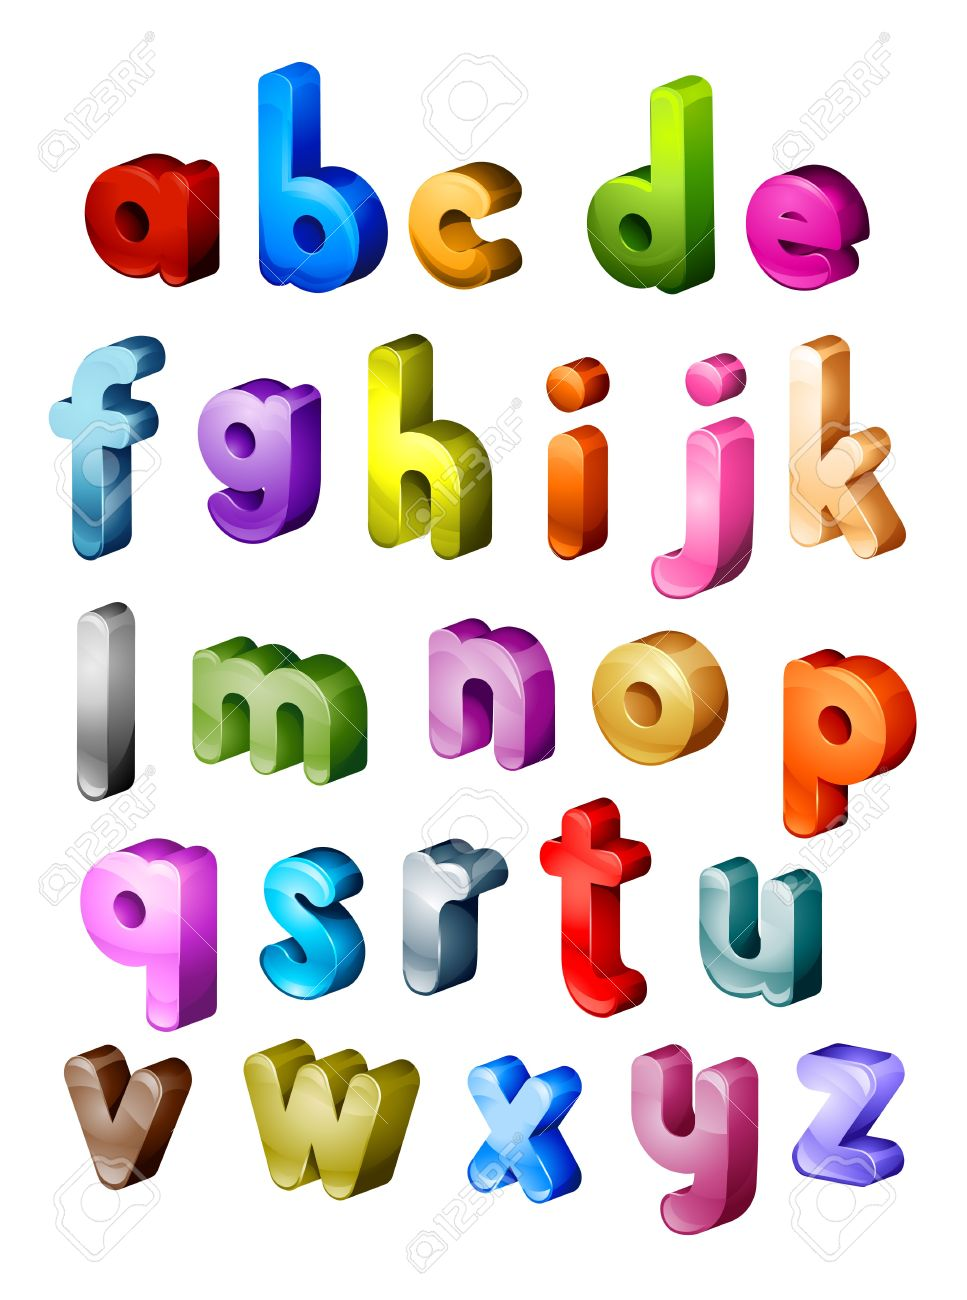 Small alphabet letter clipart clipart transparent library Isometric Alphabet In Small Letters Stock Photo, Picture And ... clipart transparent library